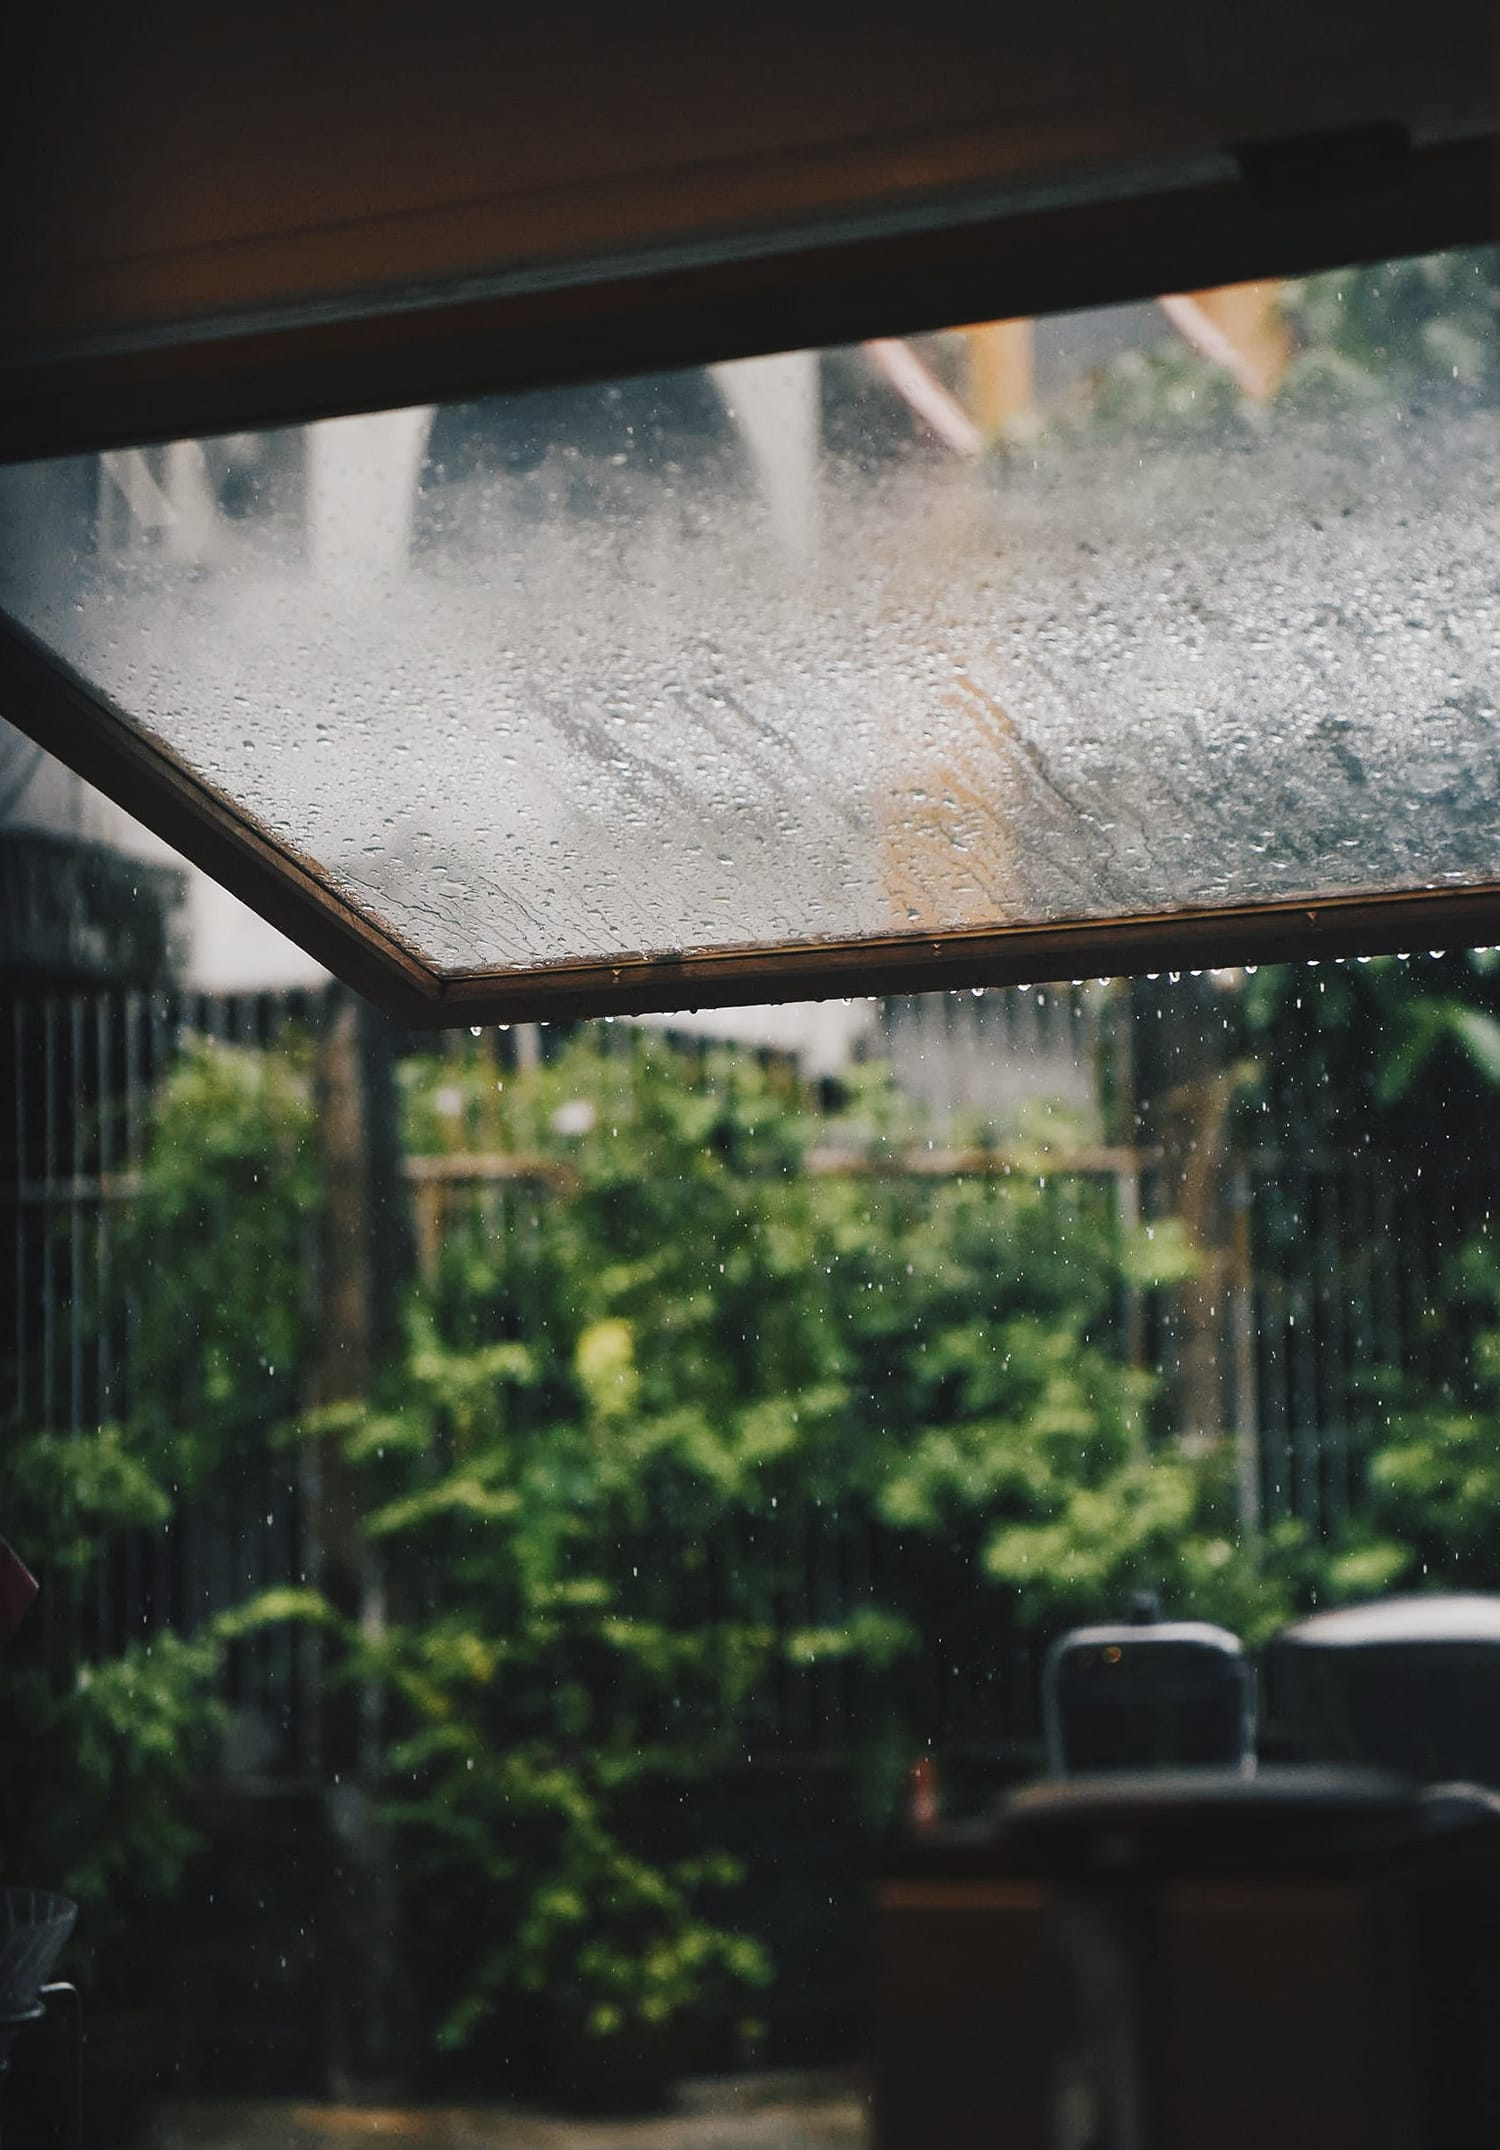 Helpful Tips & Tricks for Successfully Taking Photos in the Rain